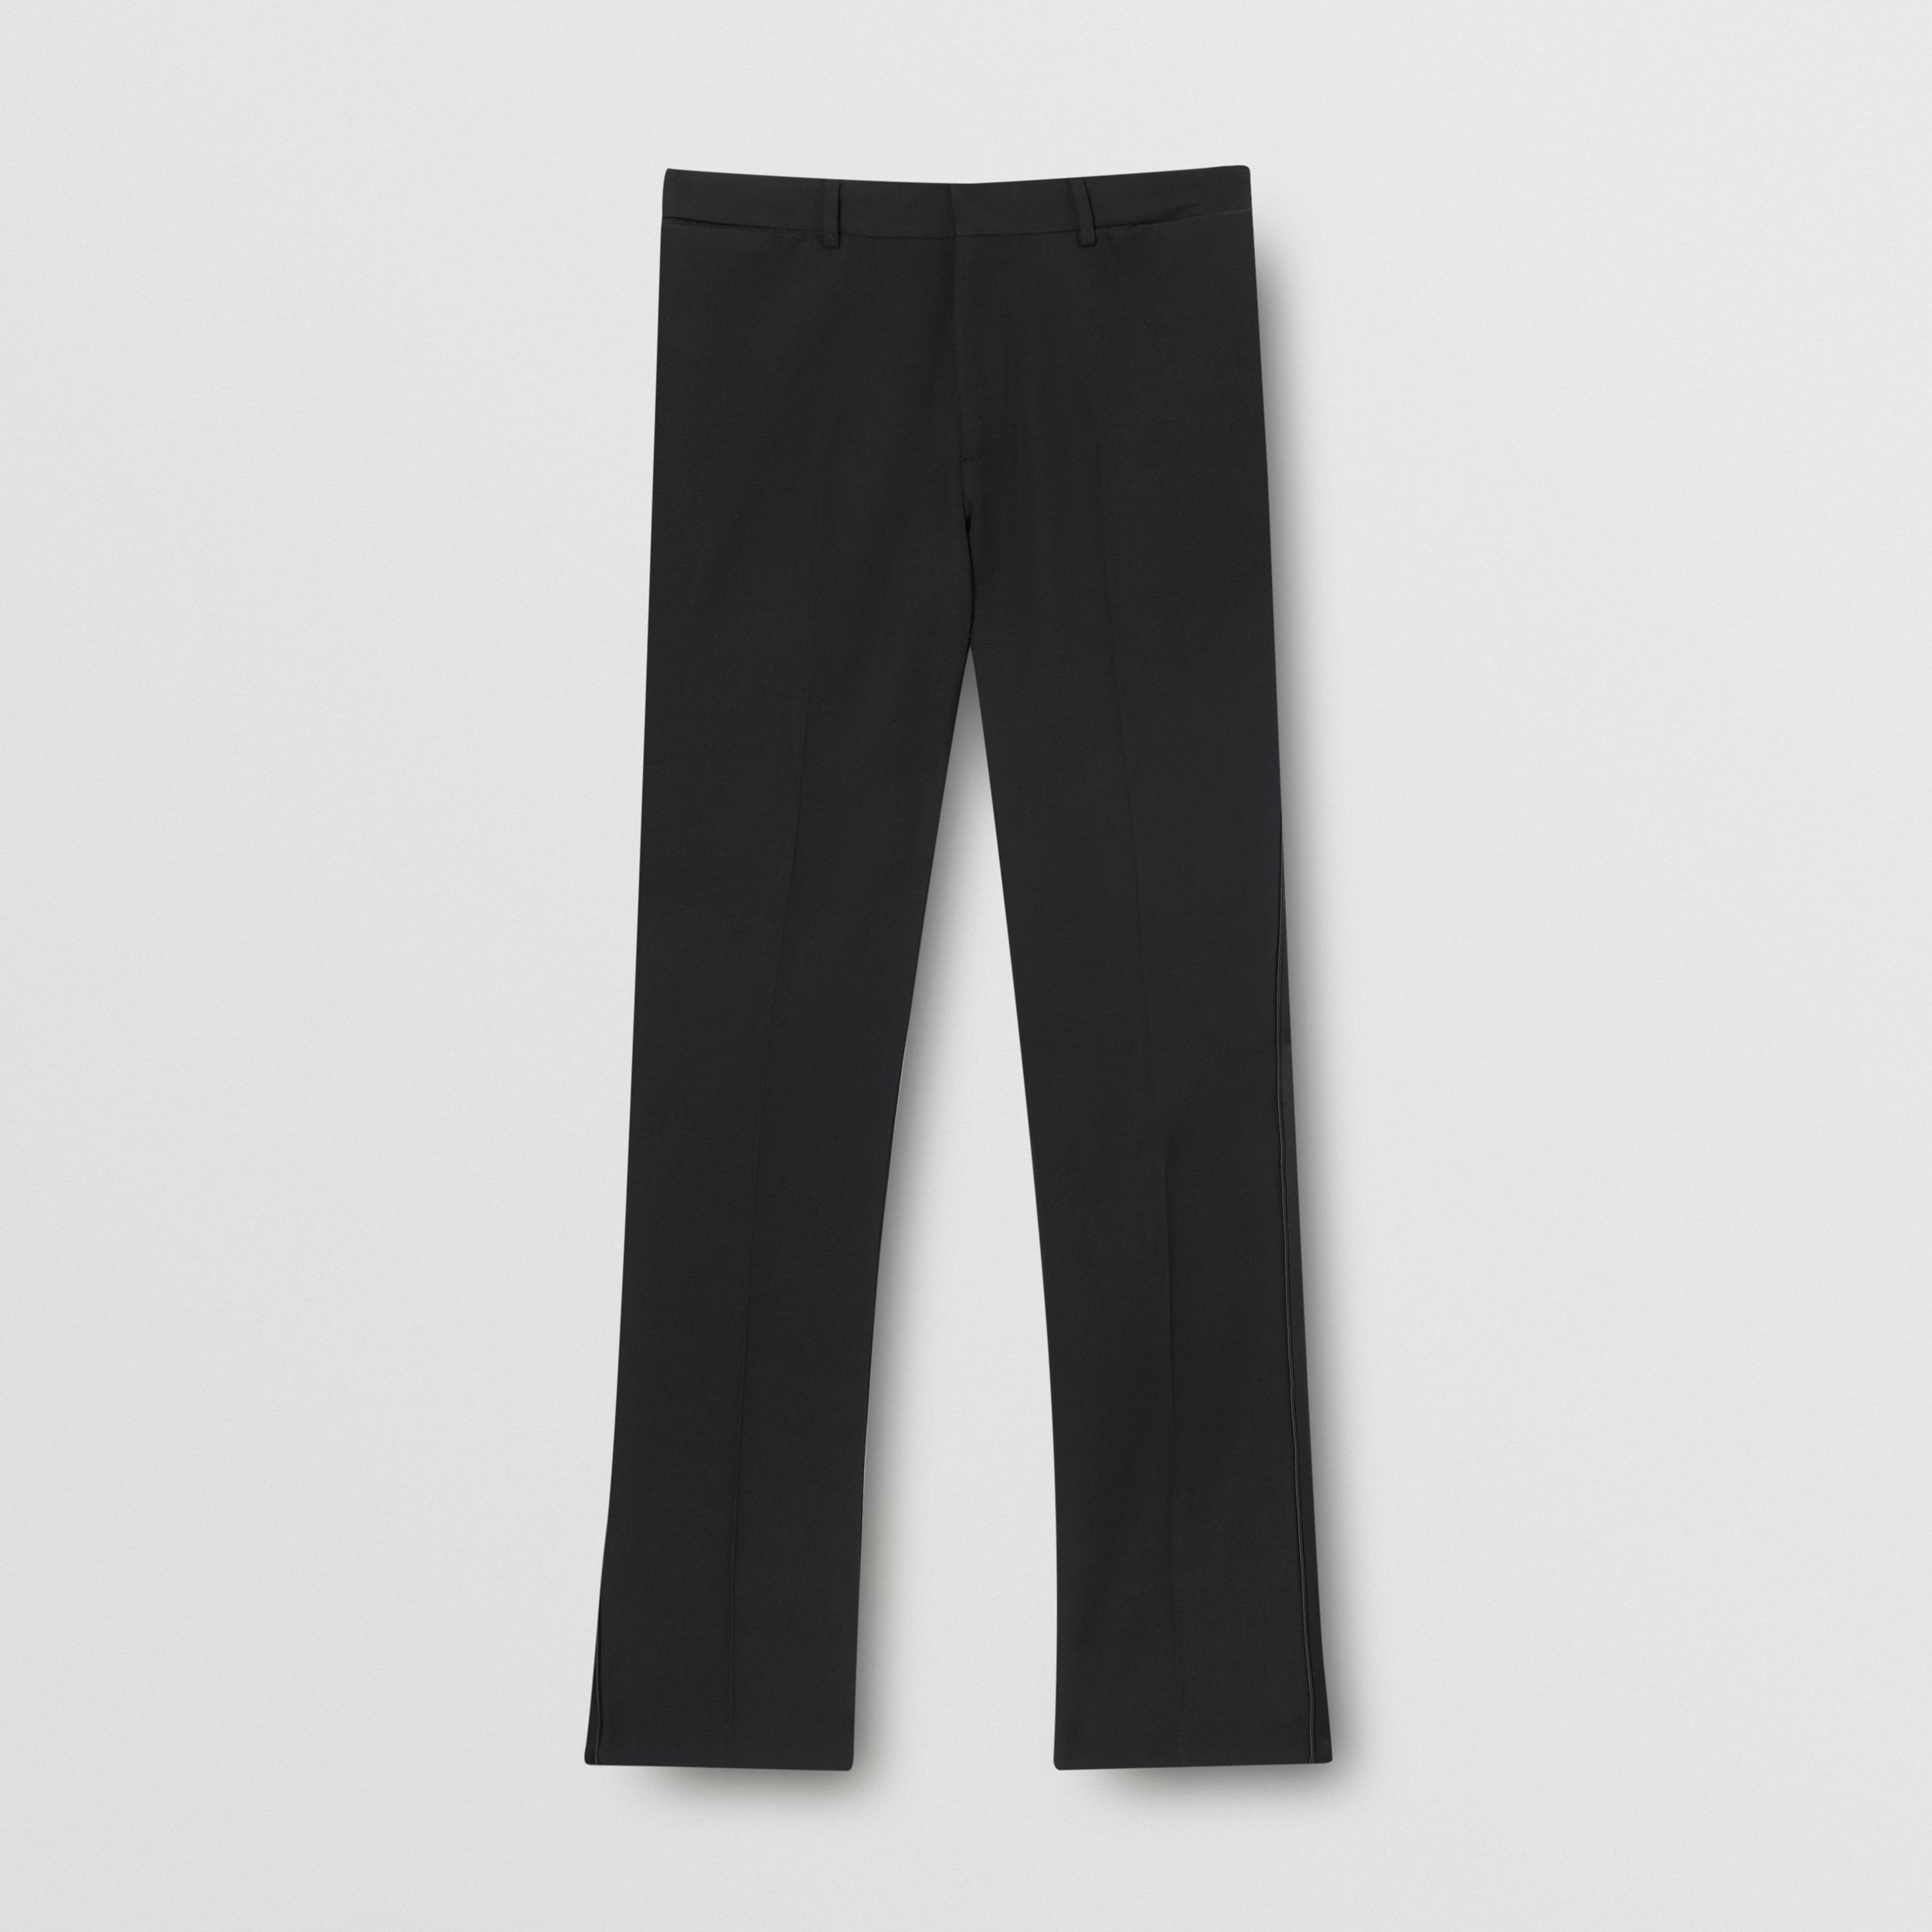 Slim Fit Silk Satin Detail Wool Tailored Trousers in Black | Burberry - 4